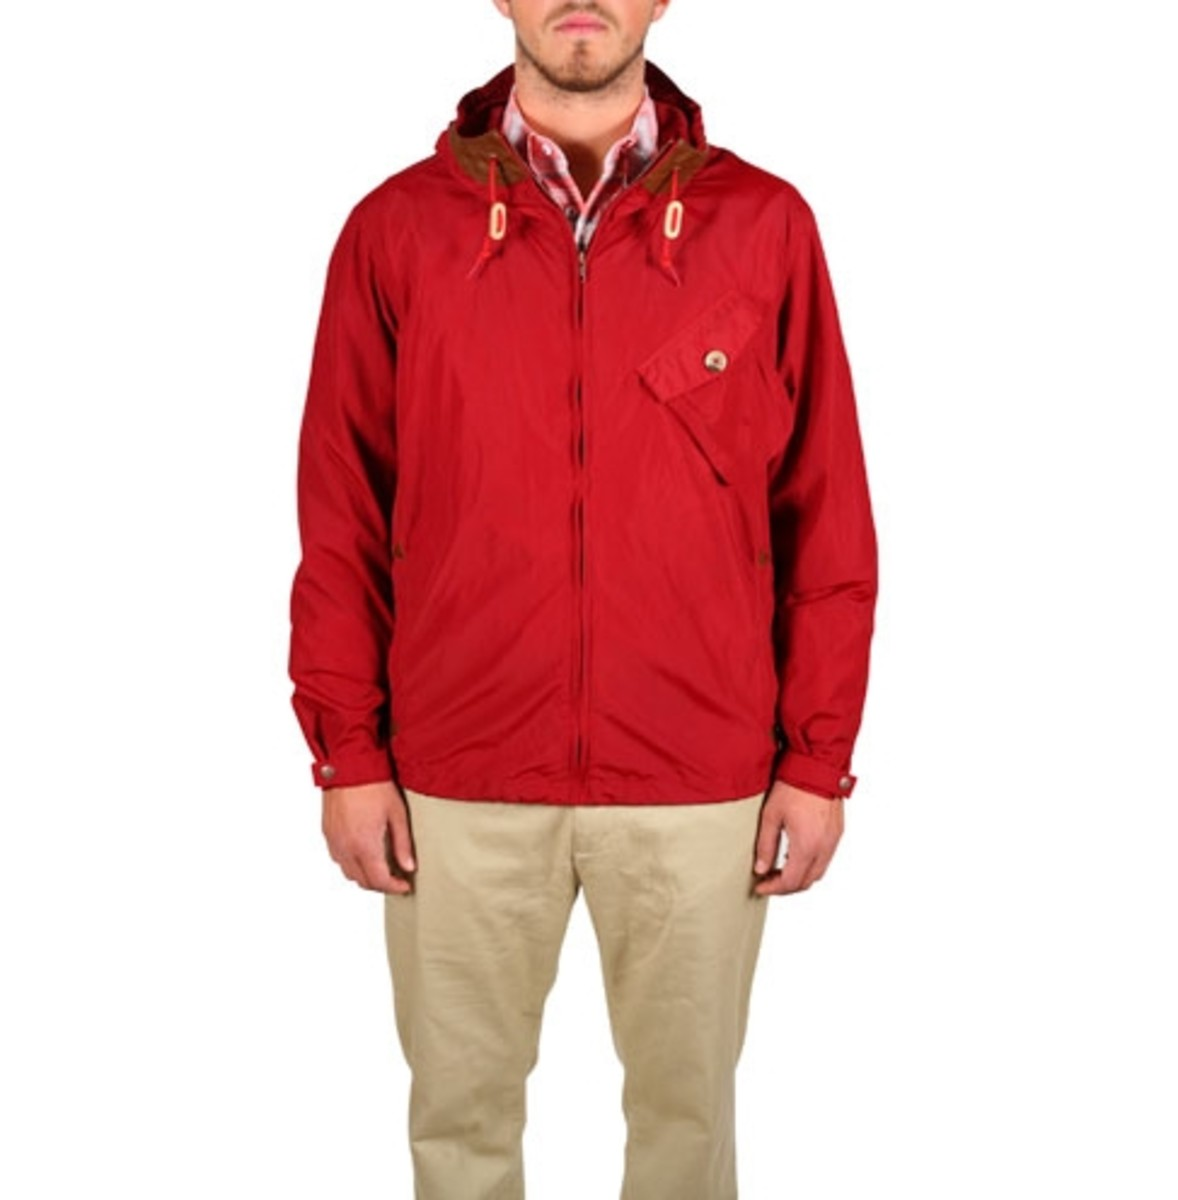 Penfield SS2011 Jackets 26